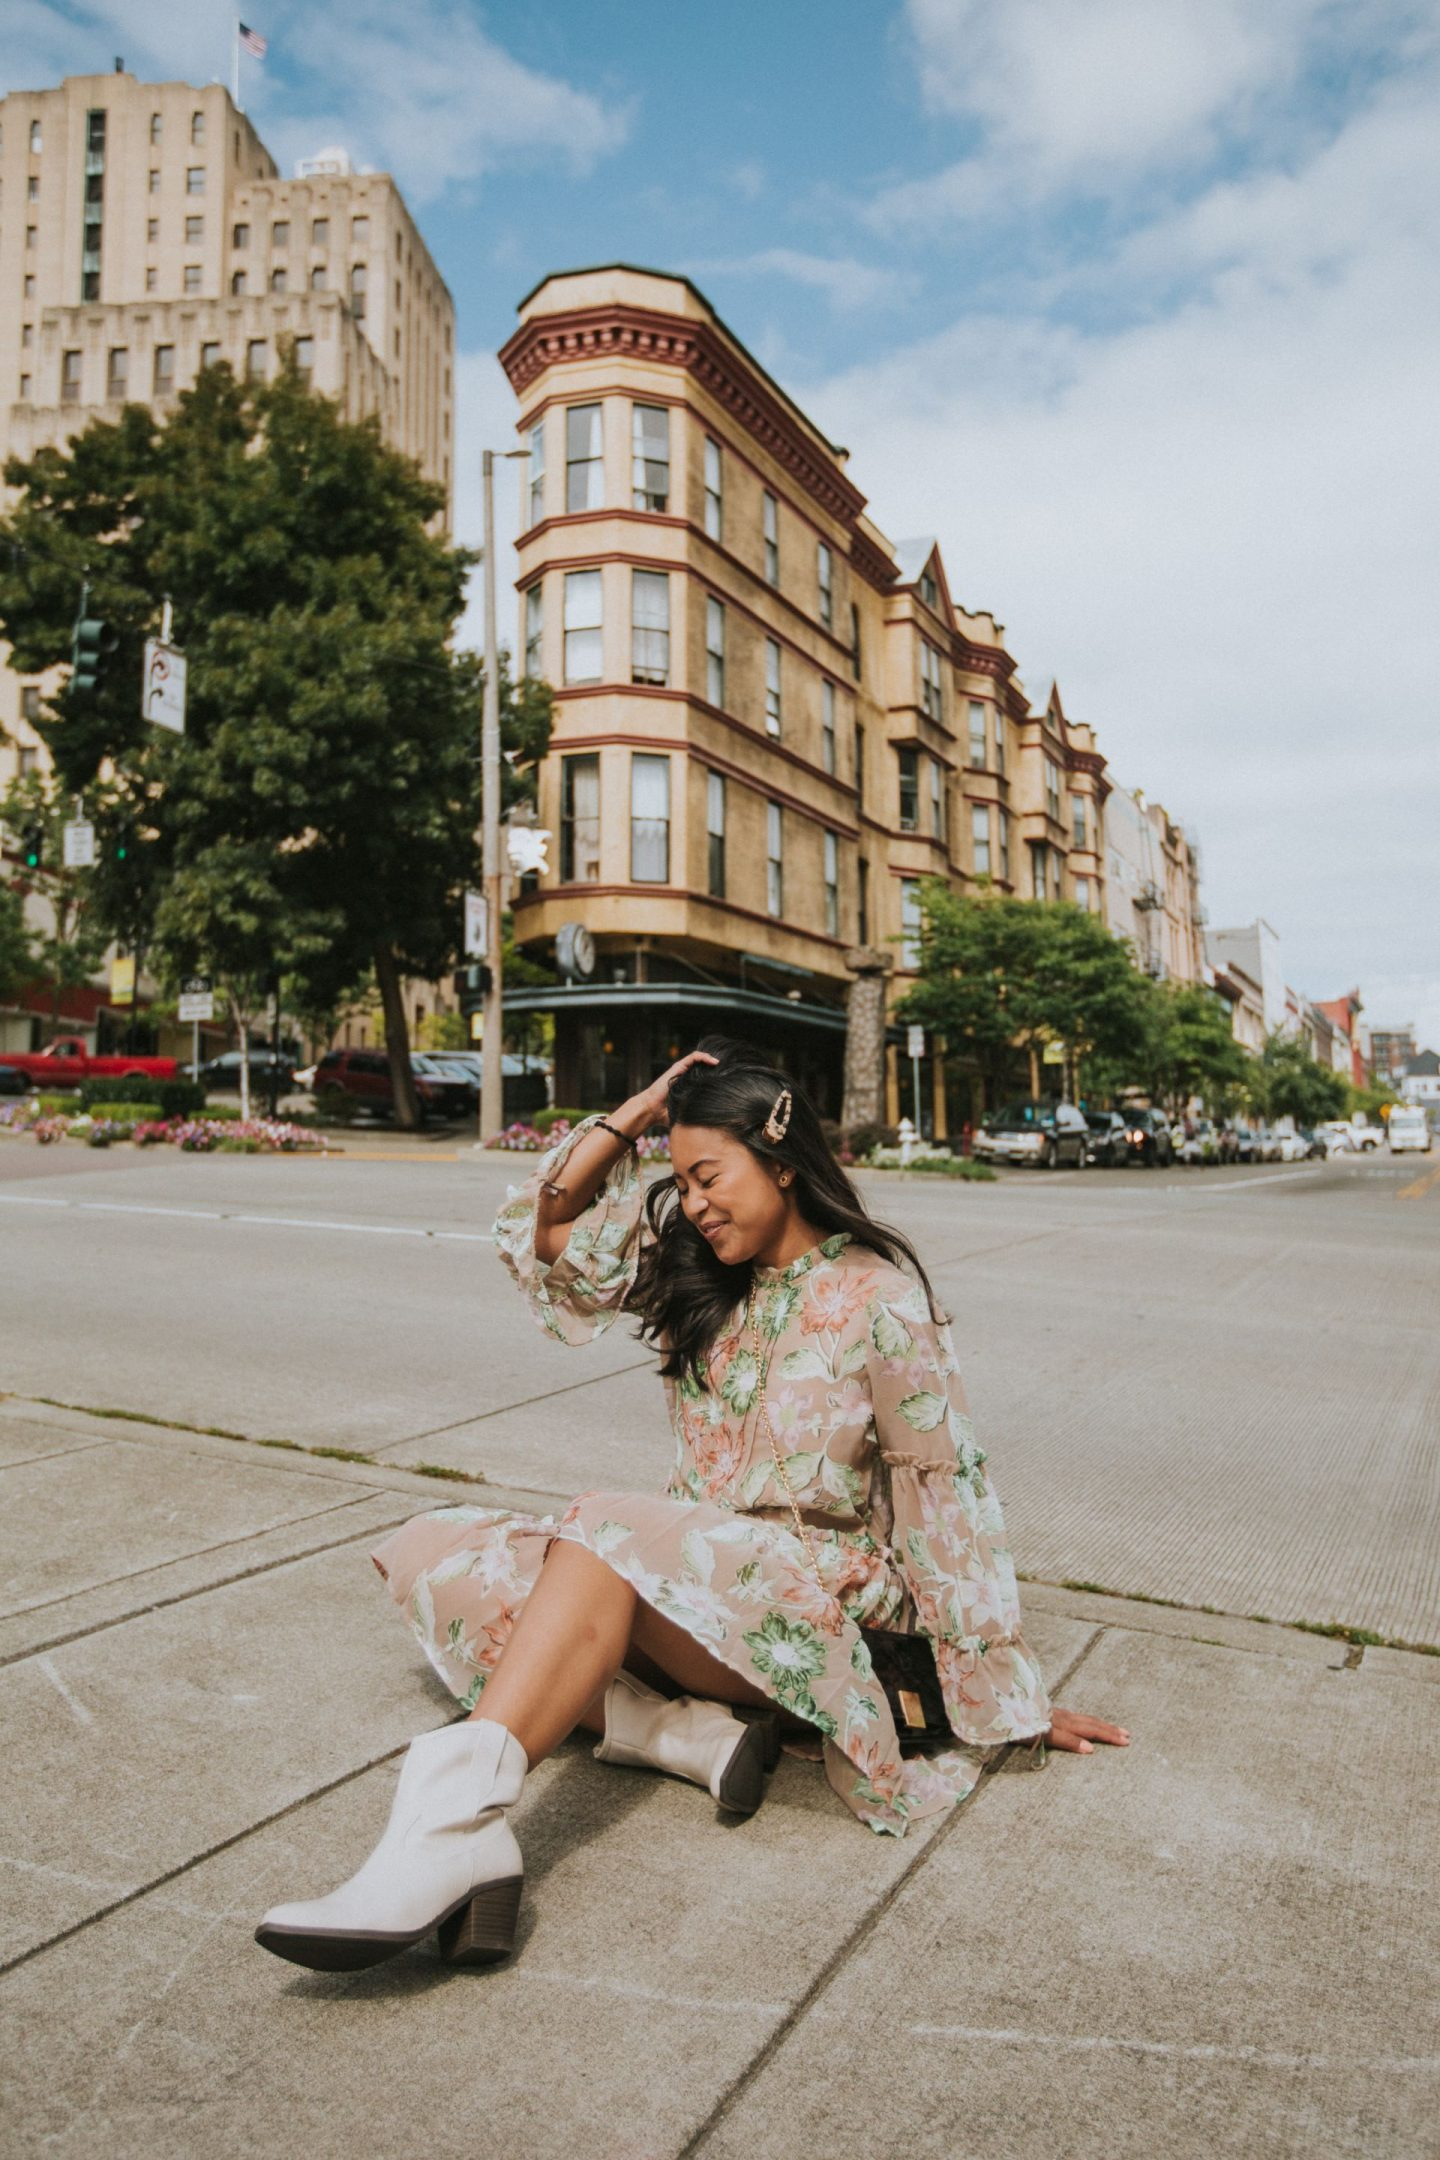 Most Instagrammable Places in Tacoma – Best photo spots in Tacoma - places to take senior pictures in Tacoma - tacoma street photography – Tacoma Washington – Instagram worthy spots in Tacoma